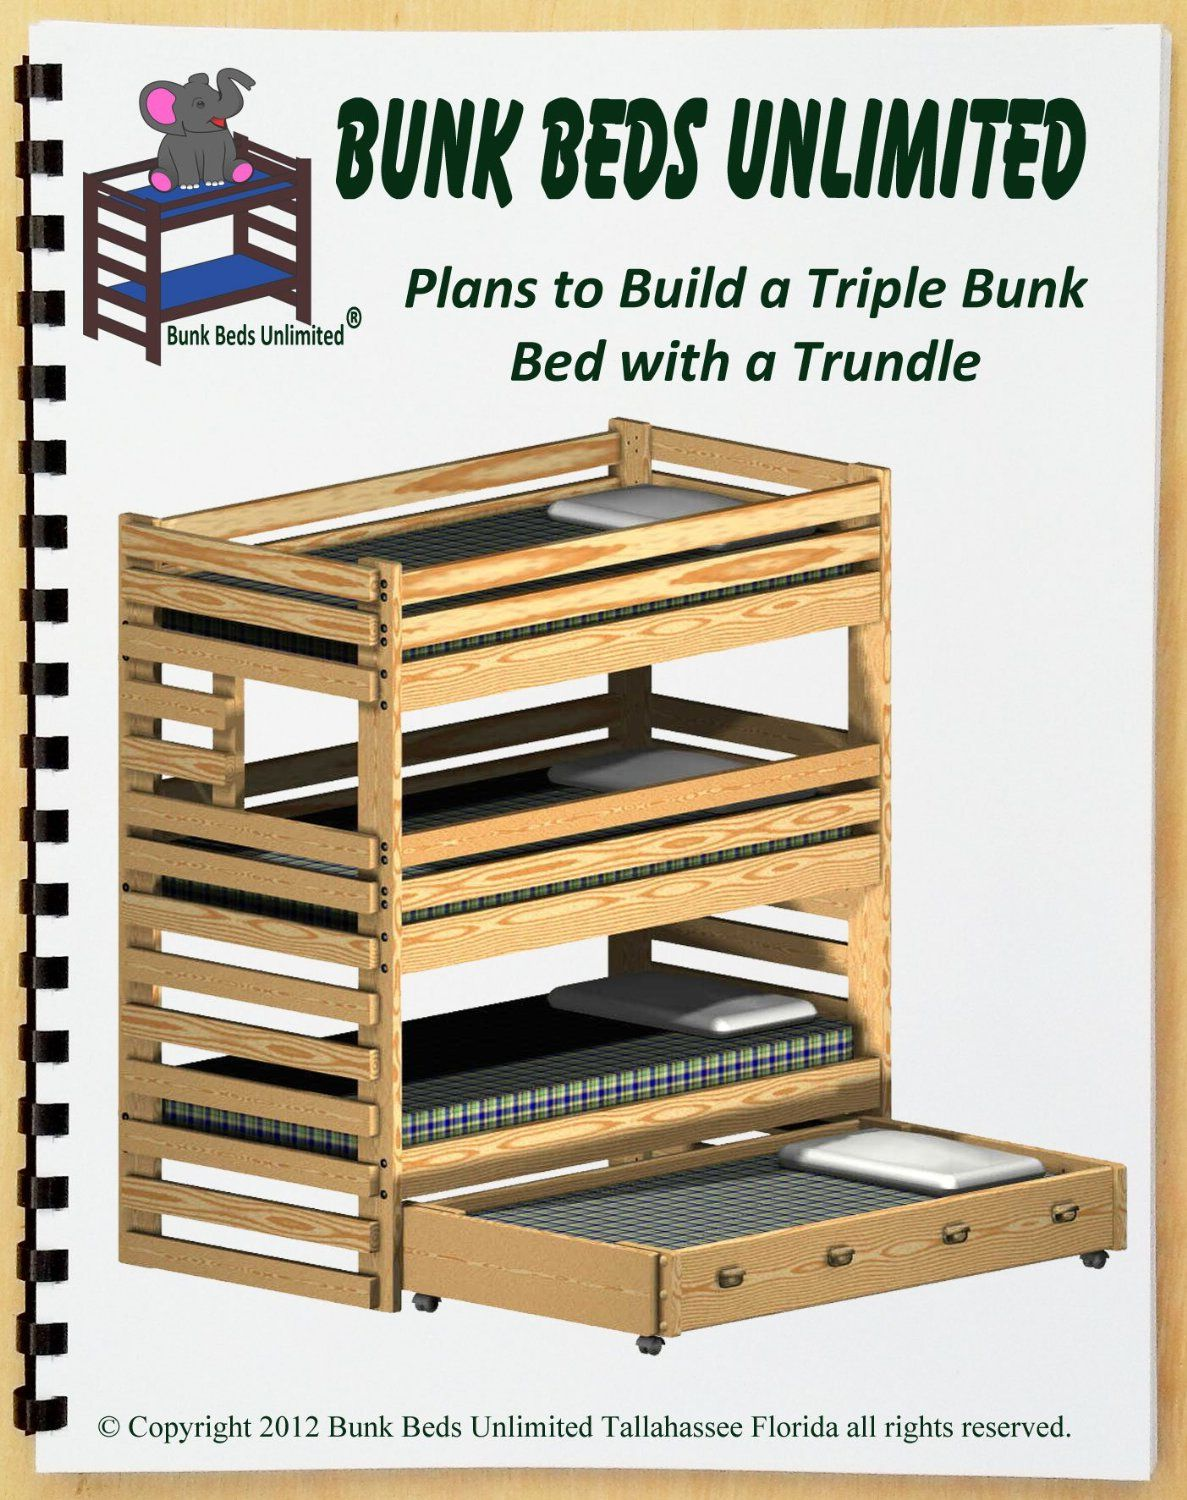 Triple Bunk Plan Not A Bed To Build Your Own Extra Tall With